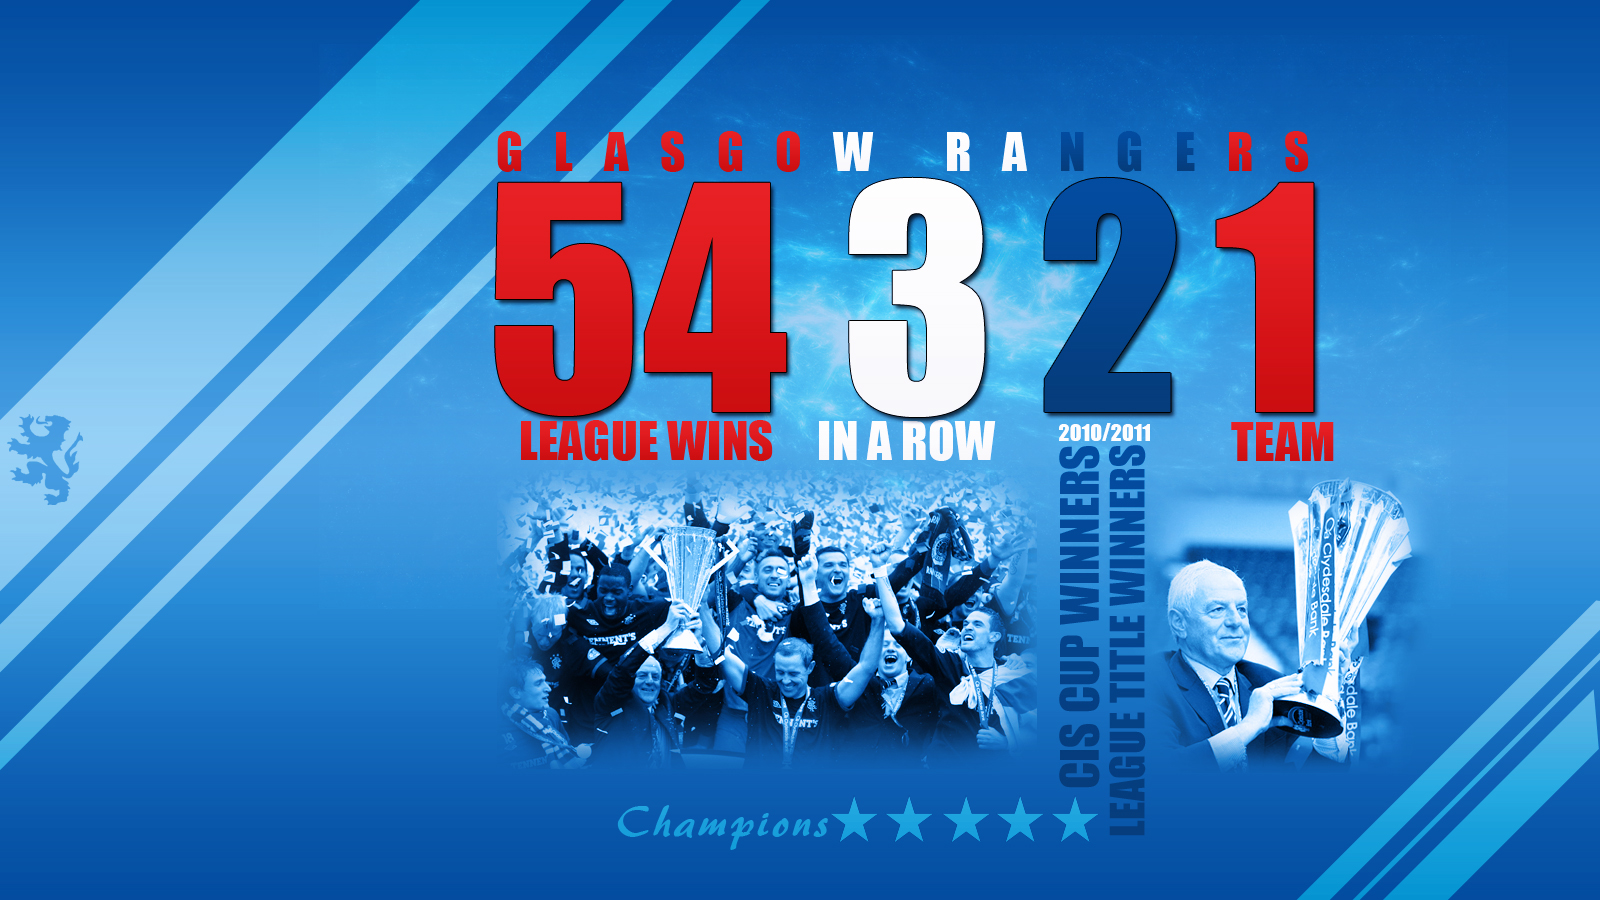 Glasgow Rangers Champions wallpaper Football Pictures and Photos 1600x900